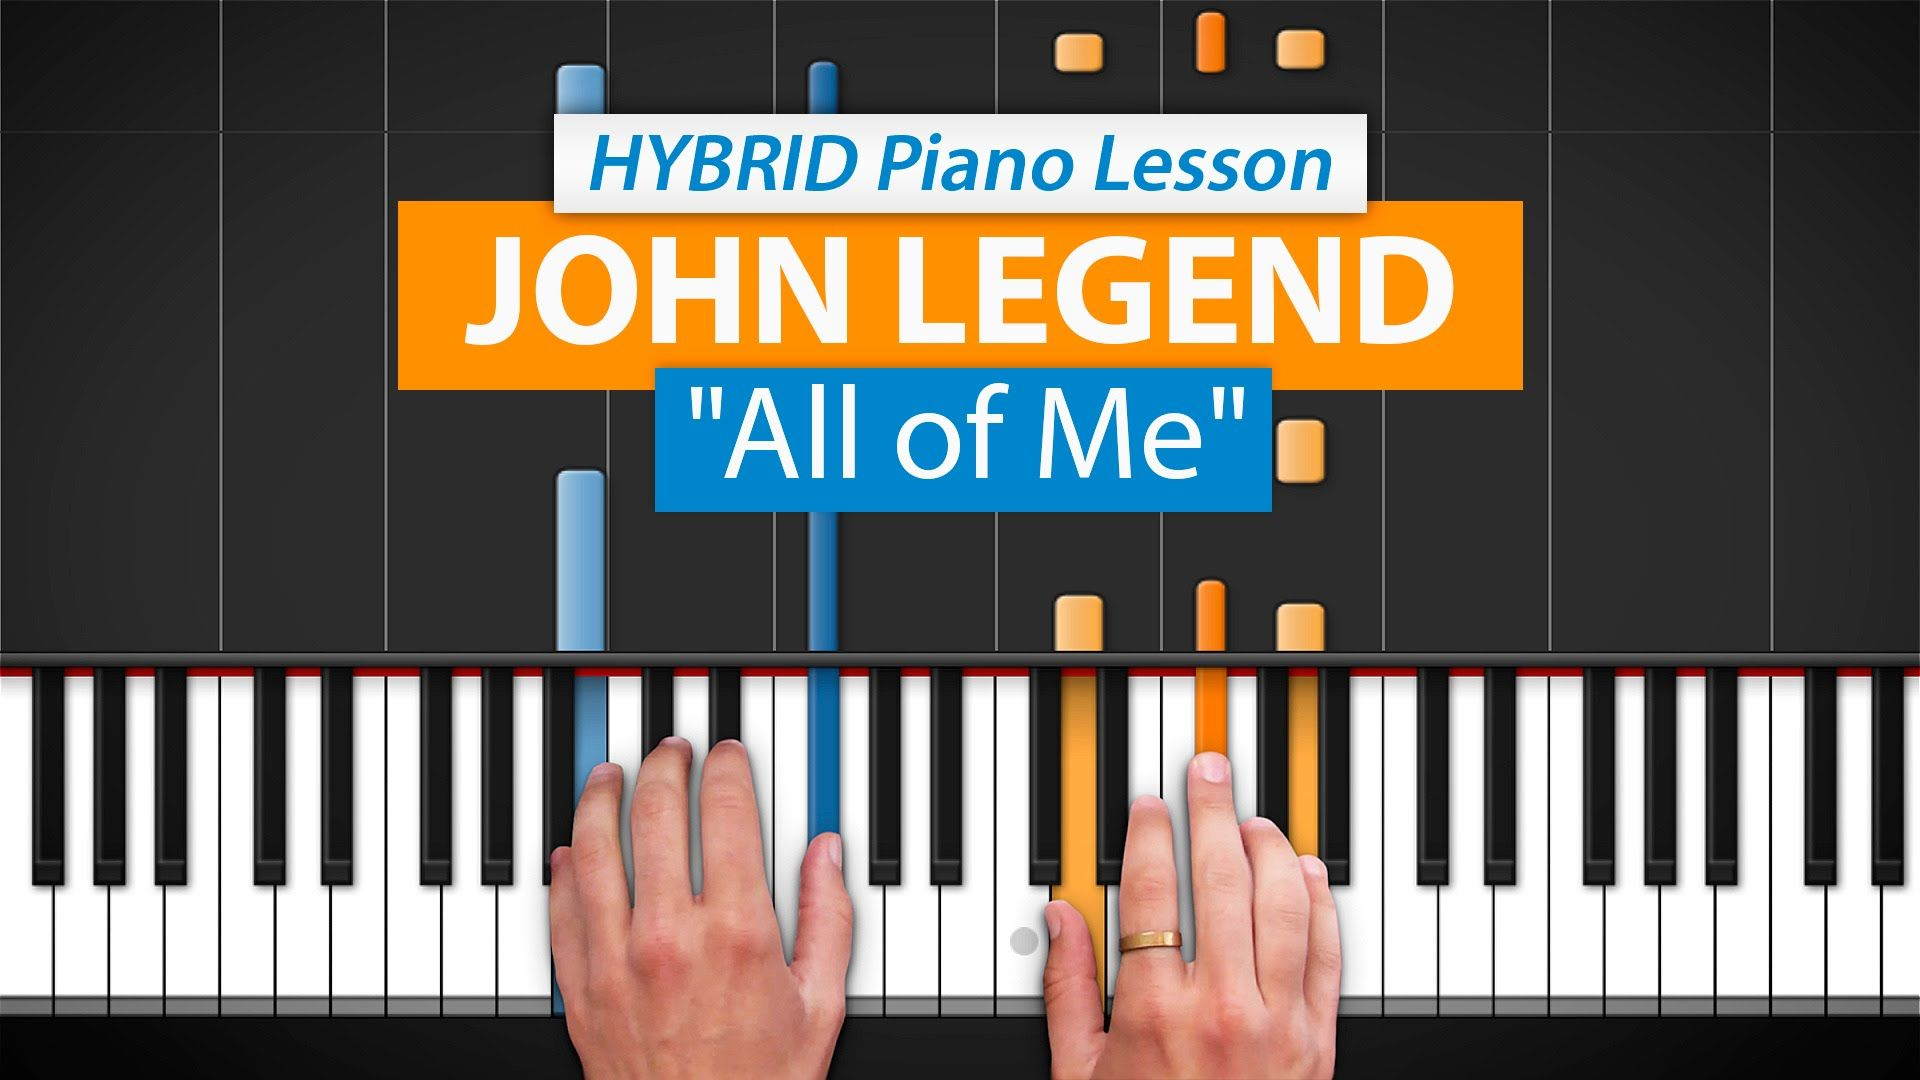 How to play all of me by john legend hdpiano part 1 piano hdpiano home of the hybrid piano lesson baditri Gallery